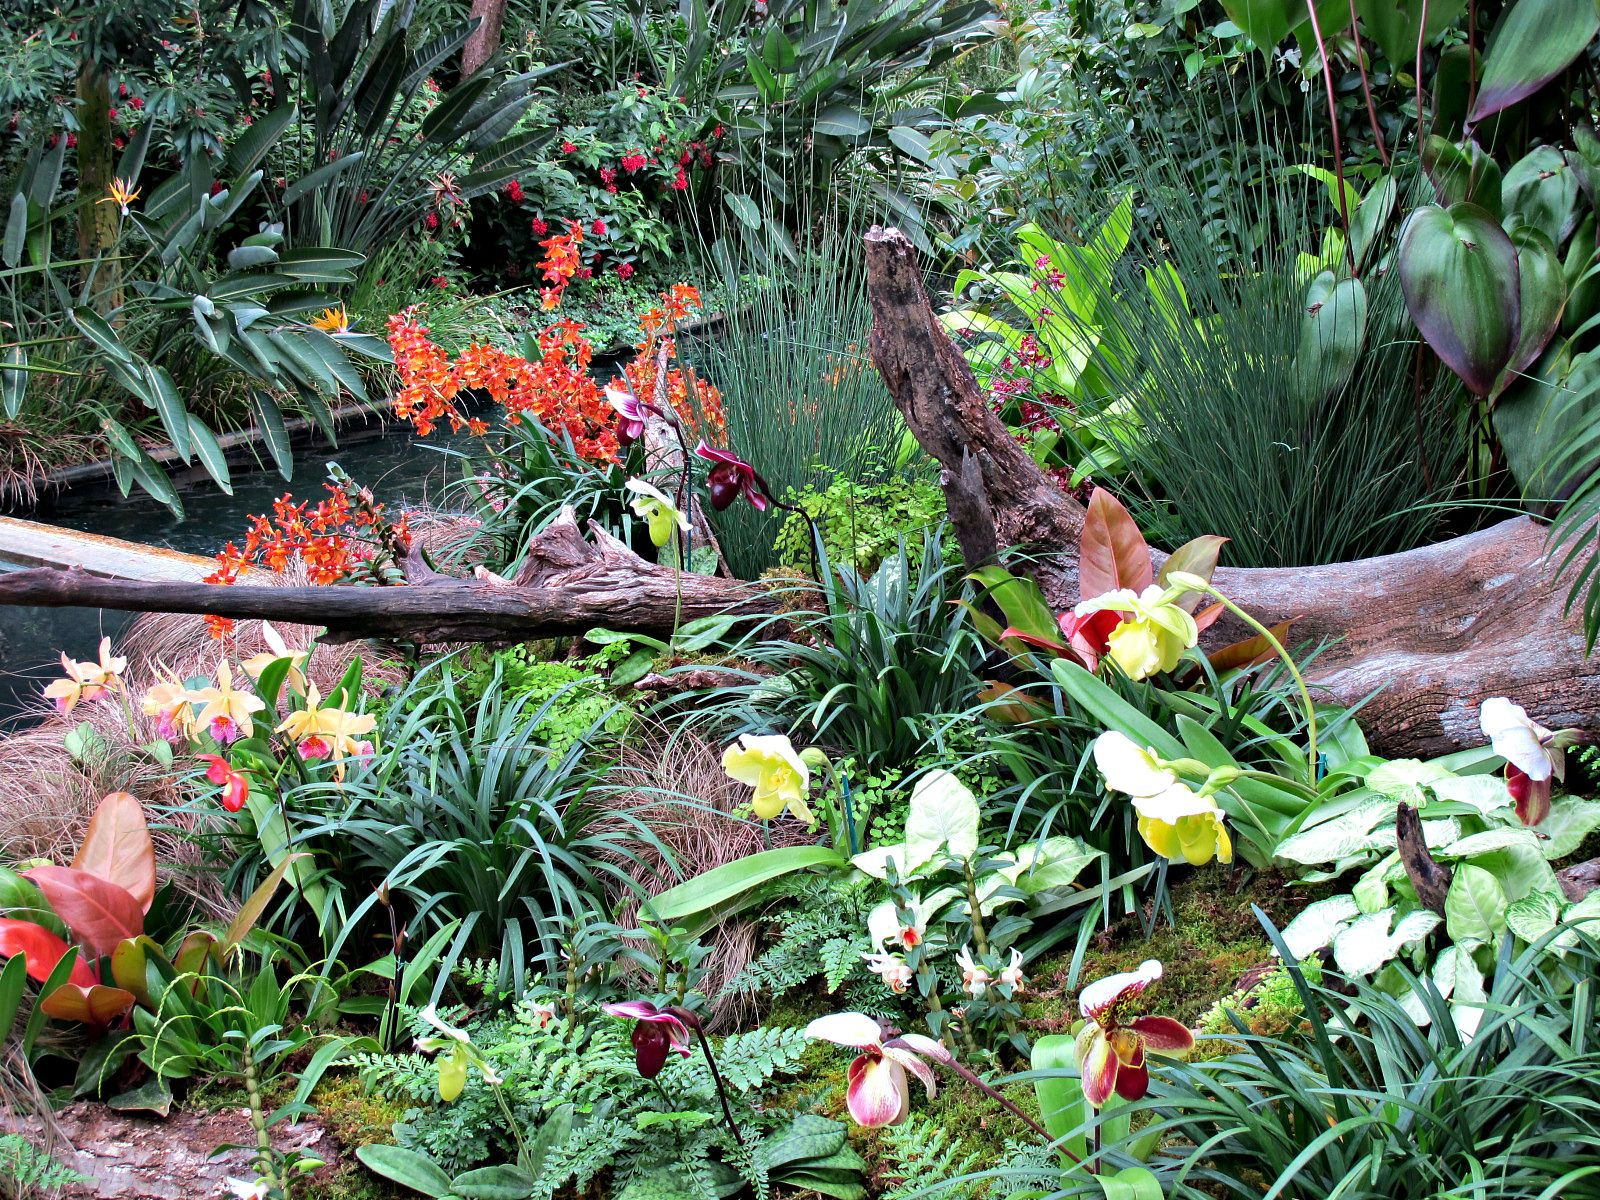 https://flic.kr/p/GZm1mE | Orchids, Conservatory Display, Longwood Gardens IMG_8000 | Longwood Gardens, Kennett Square, PA USA Photograph by Roy Kelley Roy and Dolores Kelley Photographs